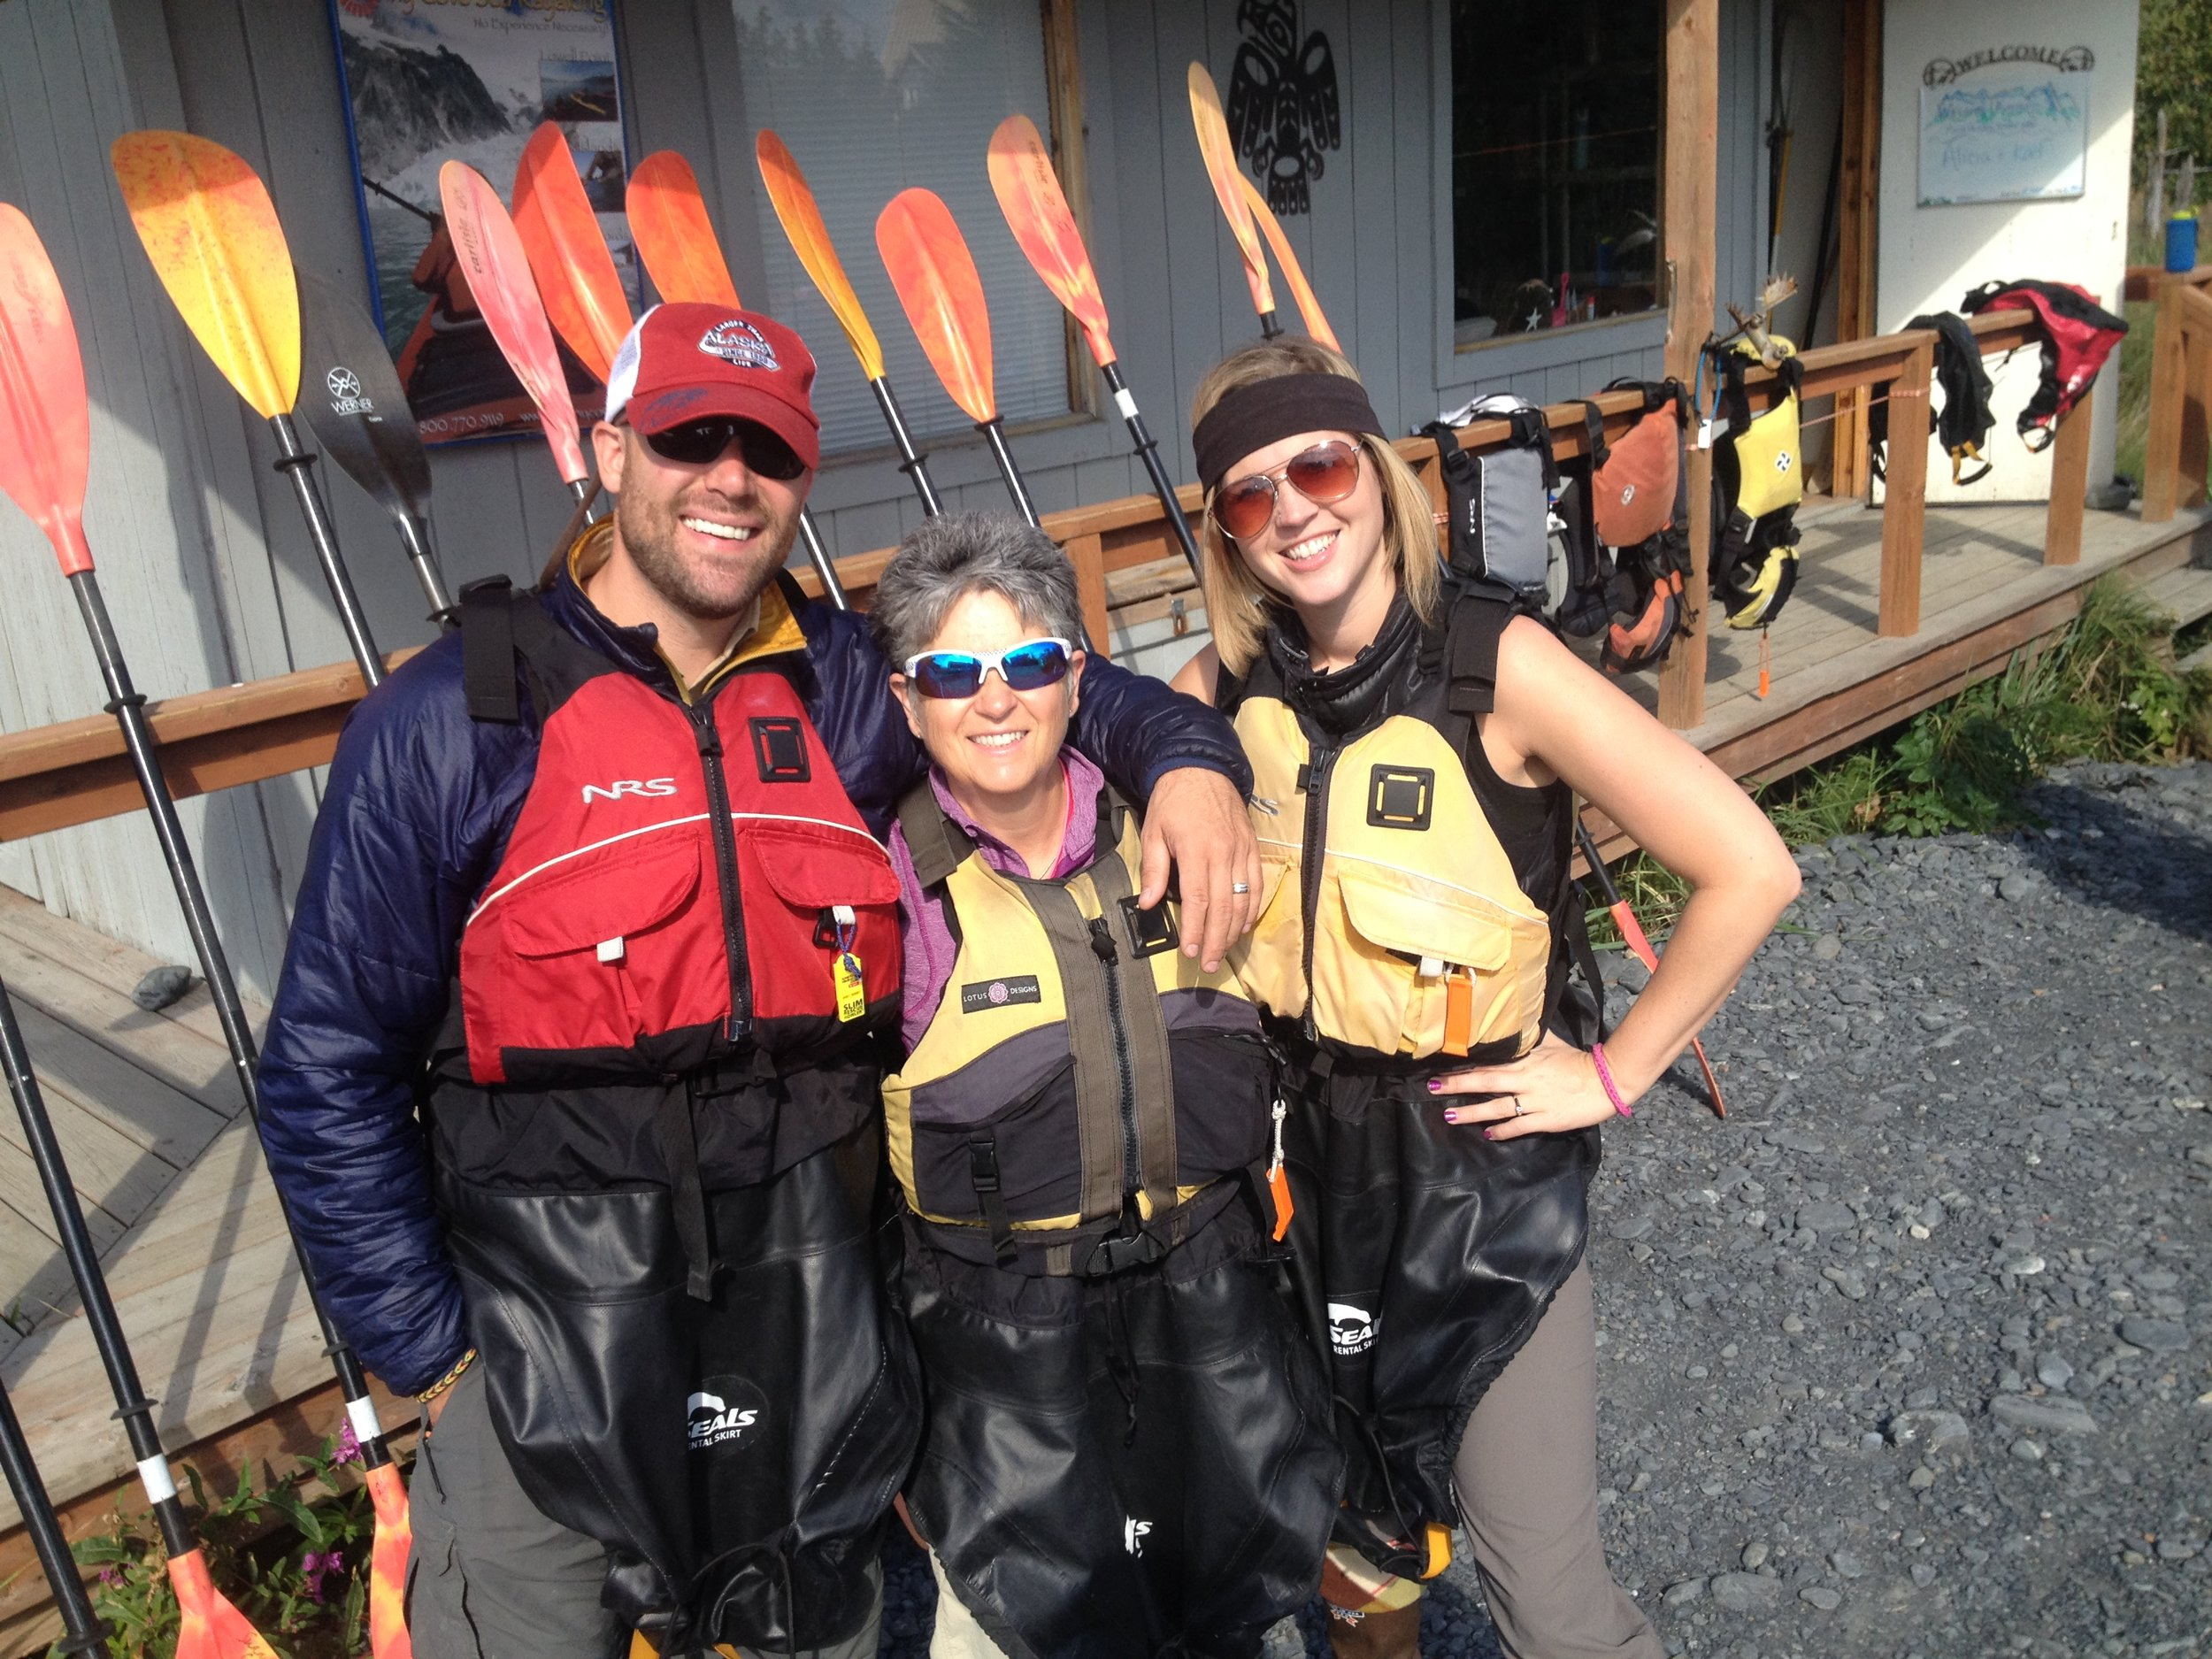 We provide each guest with a Personal Flotation Device, recreational spray skirt and waterproof boots. Splash wear is also available if needed. We'll never uncharge for using our gear!